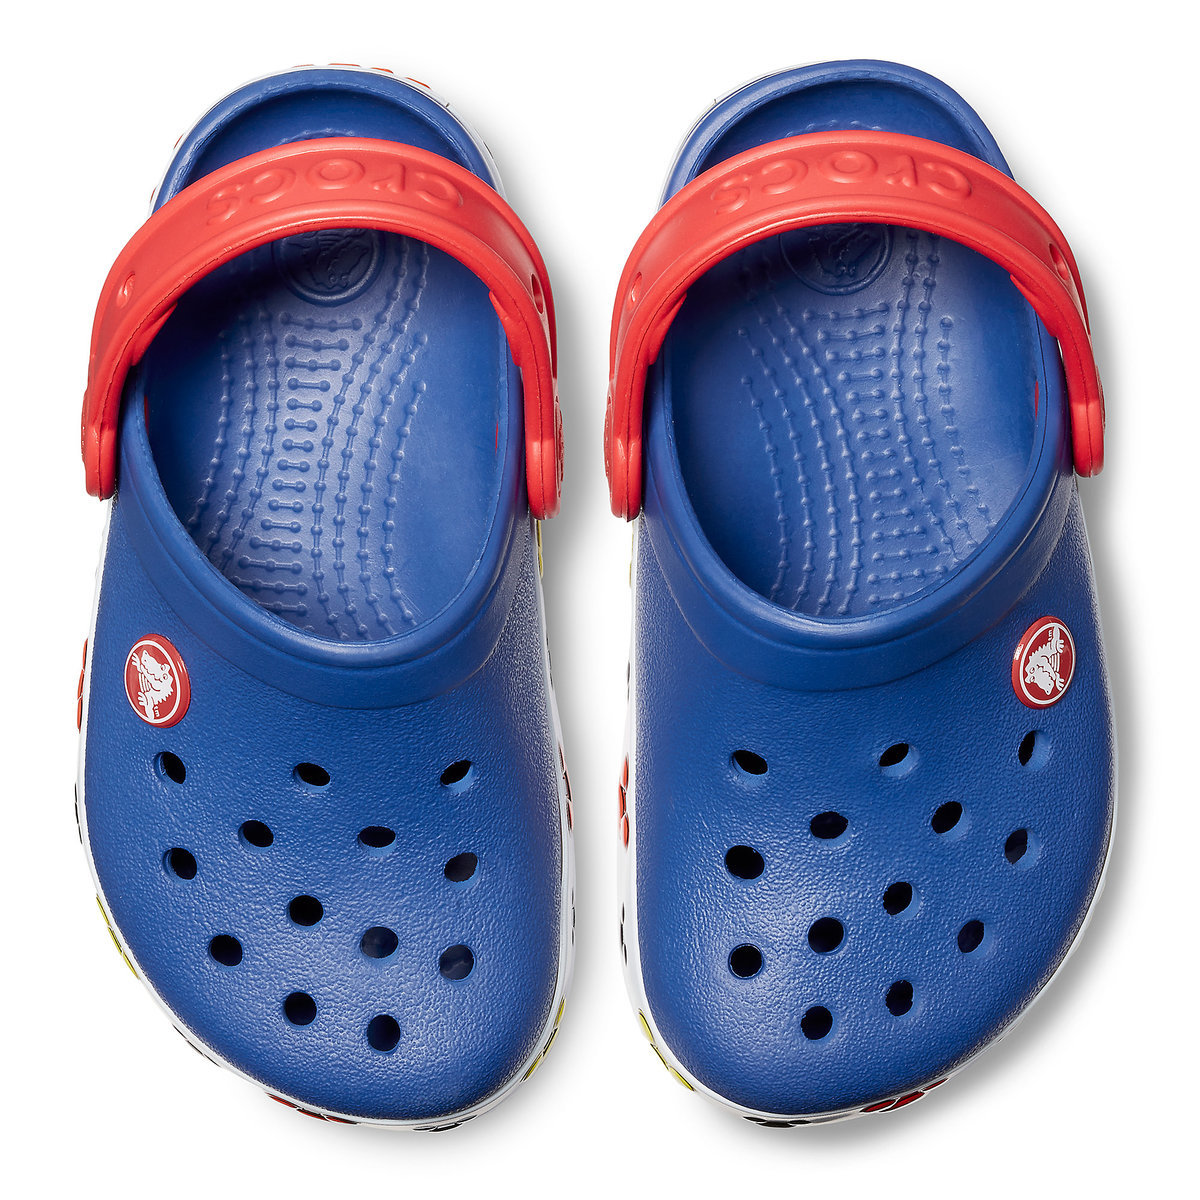 ed99aa12d Mickey Mouse Crocs™ Light-Up Clogs for Kids - Blue